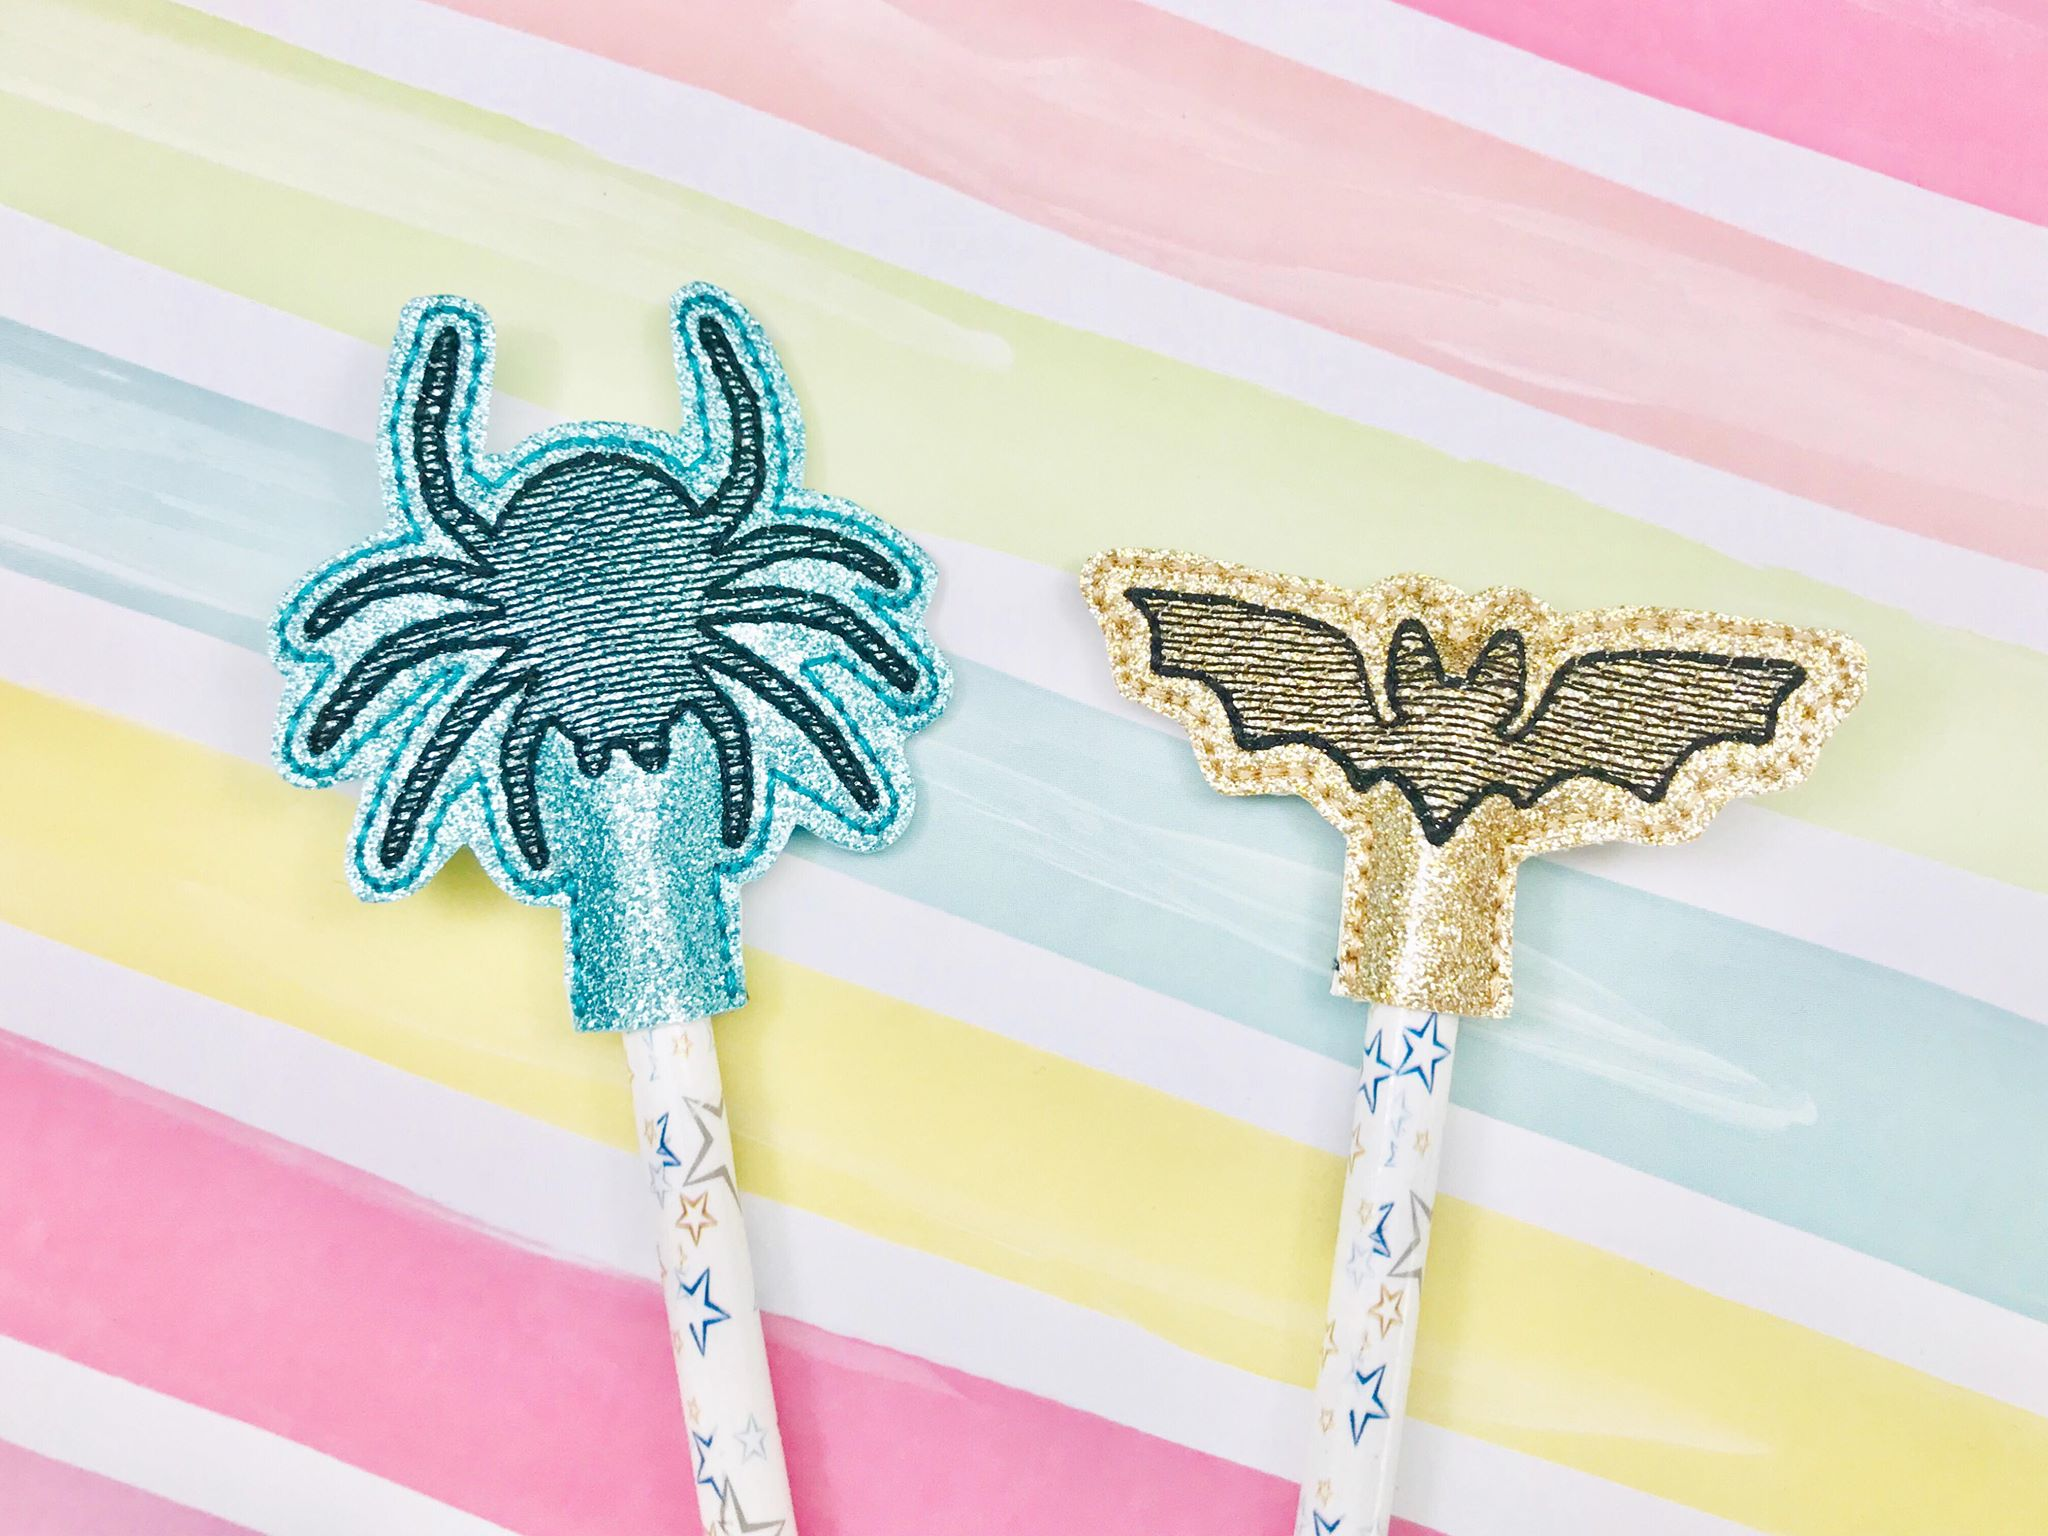 Bat and Spider Pencil Toppers